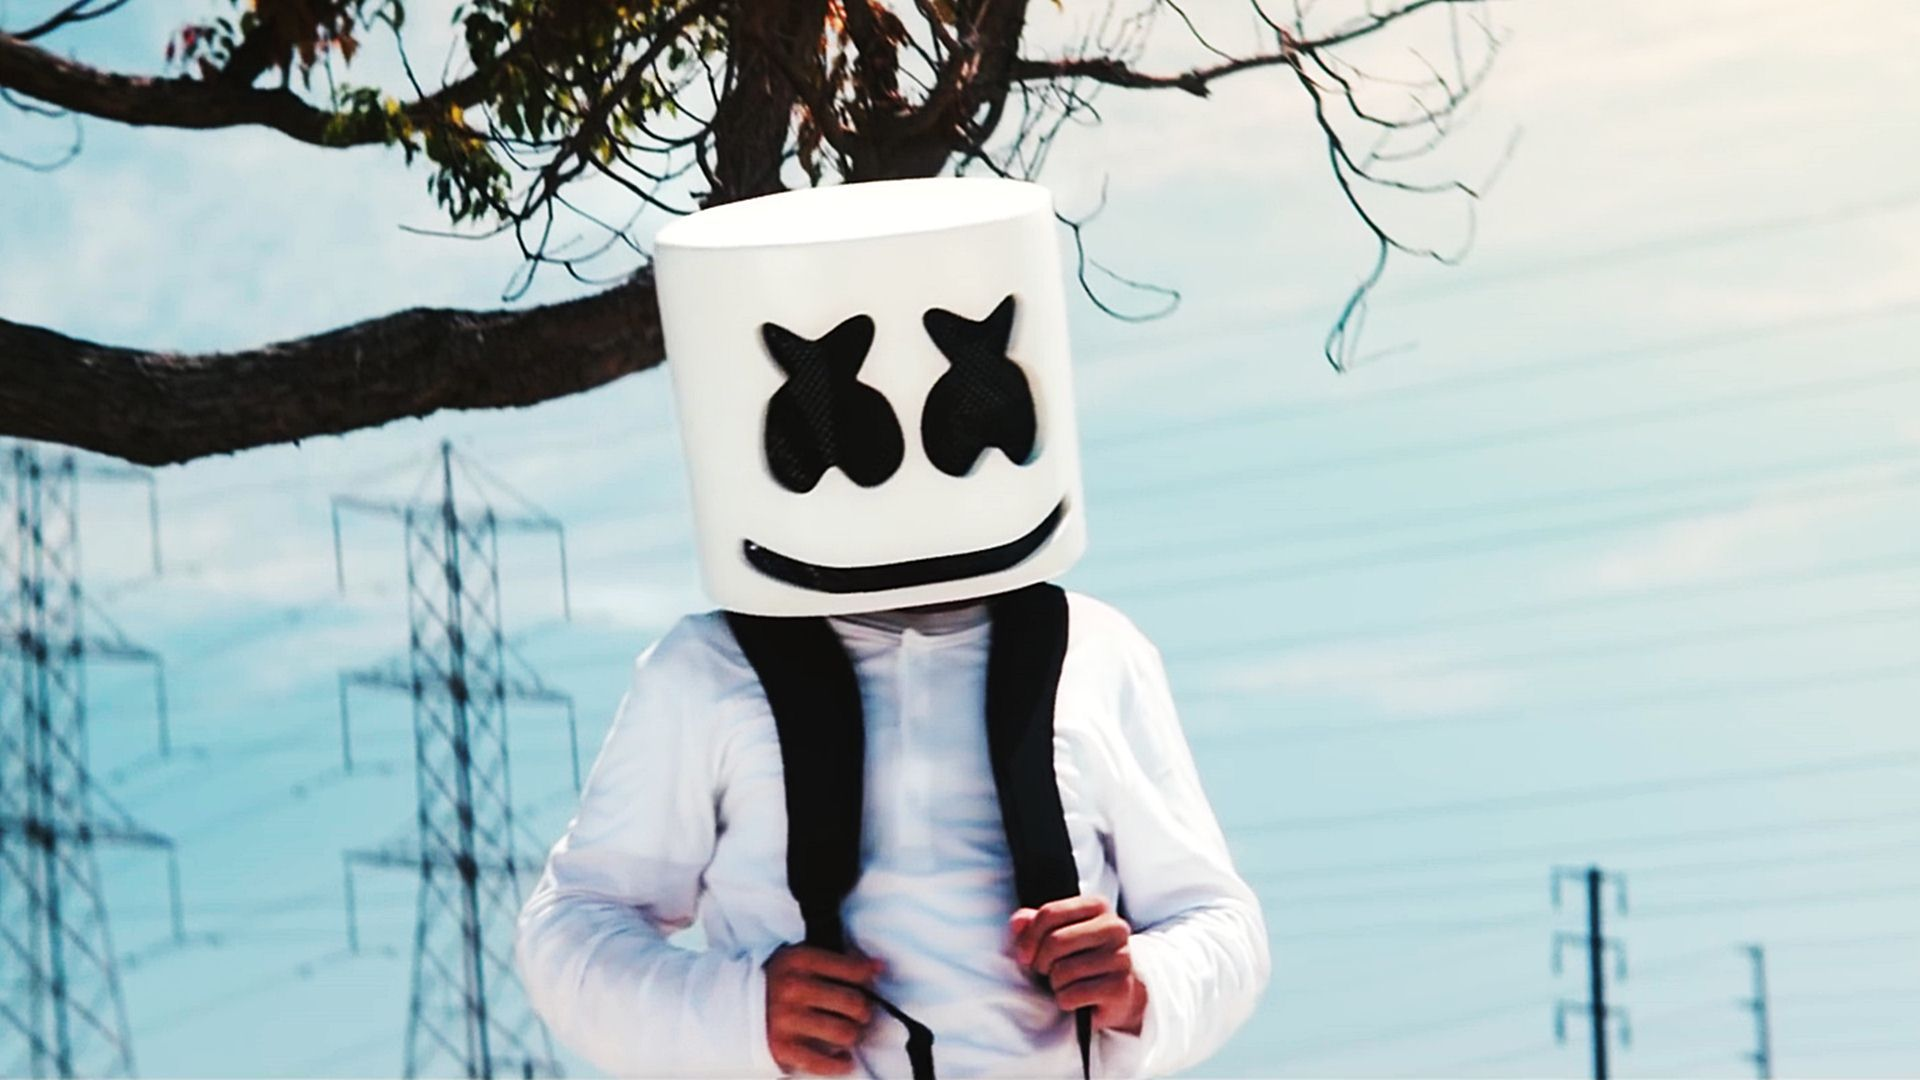 Marshmello HD Images 06212 Baltana Tag art, Hd images